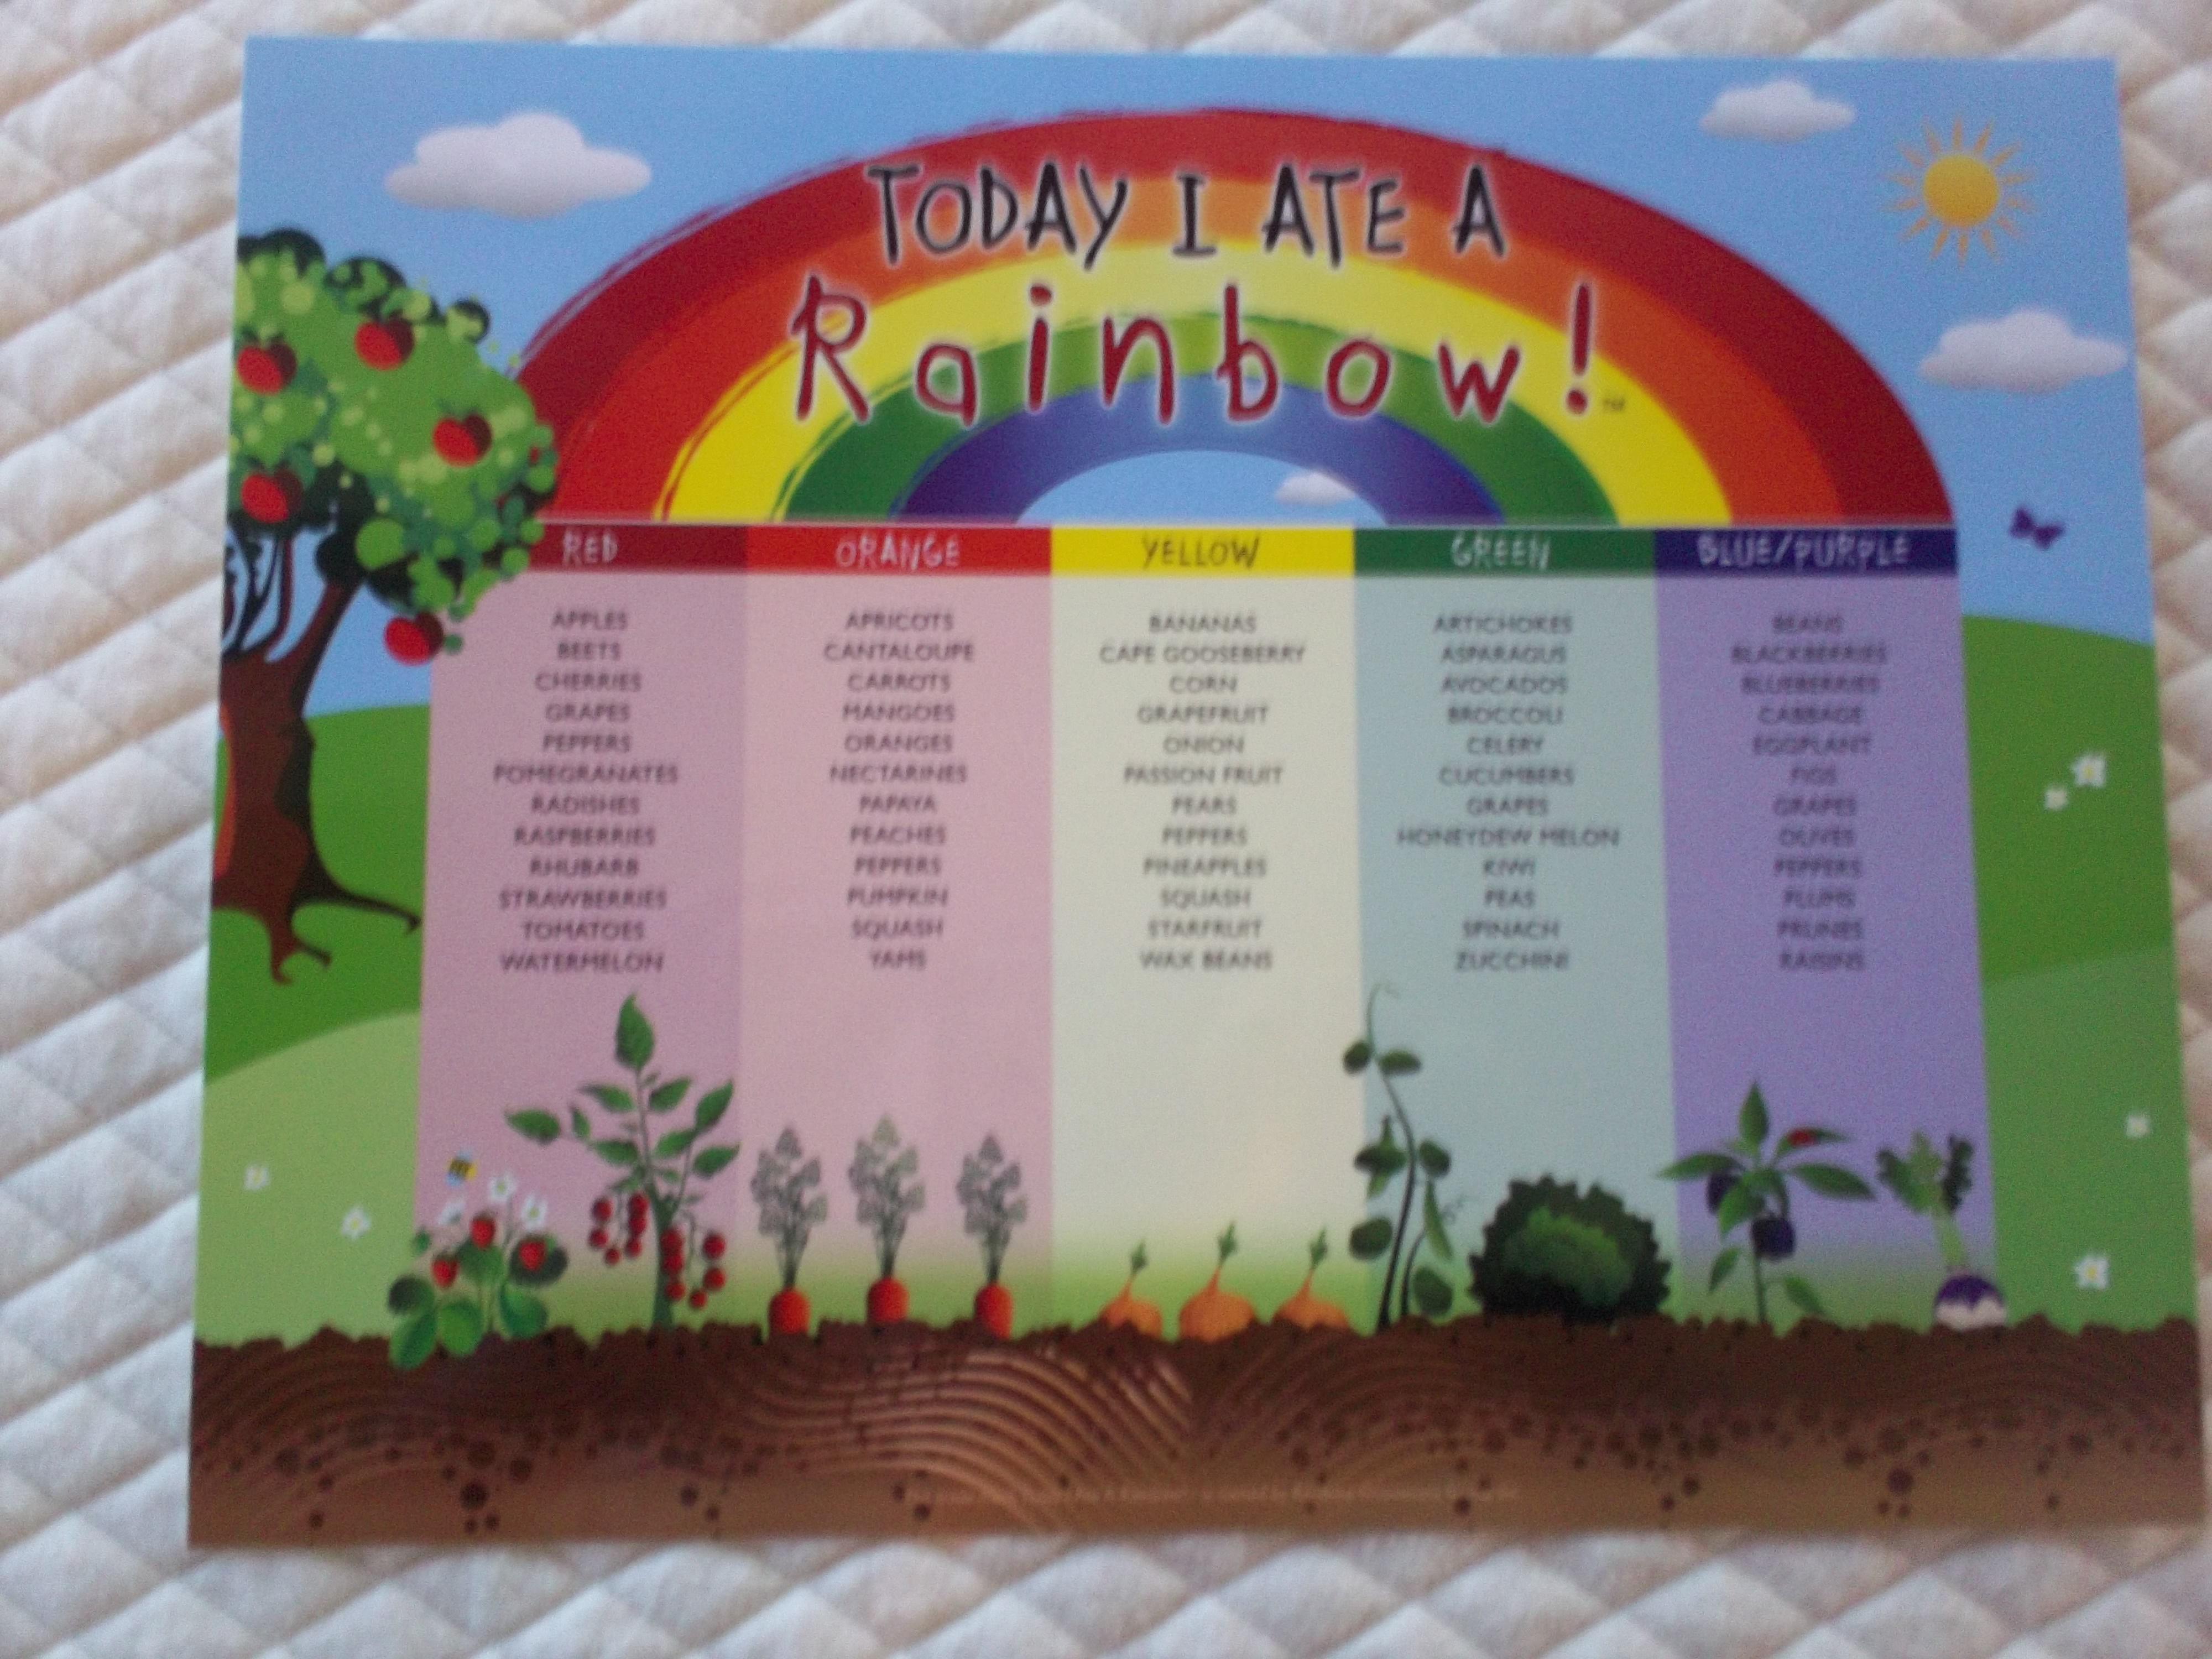 Today i ate a rainbow emily reviews today i ate a rainbow chart review and giveaway us 0228 nvjuhfo Images